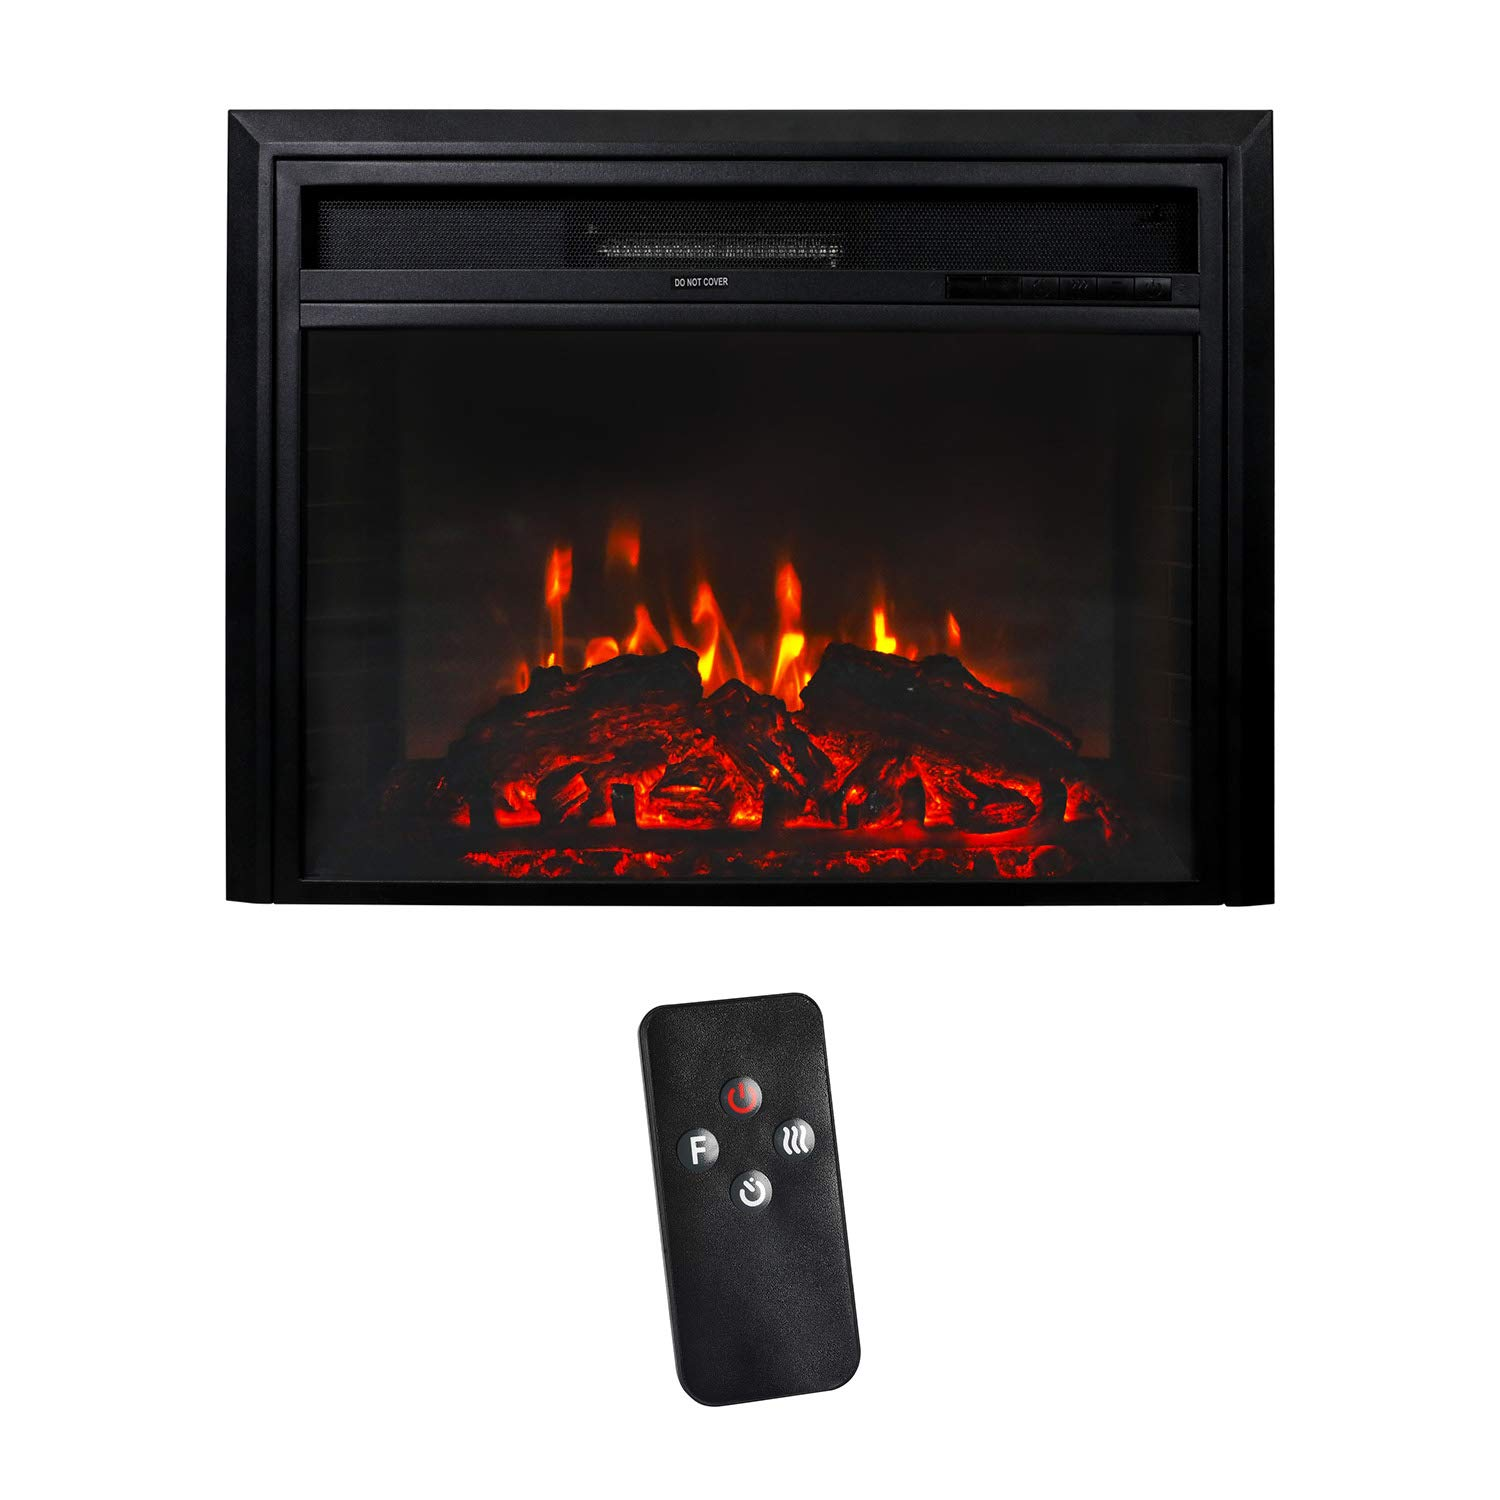 Peachtree 28 Inches Electric Fireplace Wall Recessed Heater Remote Control, Log Sets, 750 1500W, Black